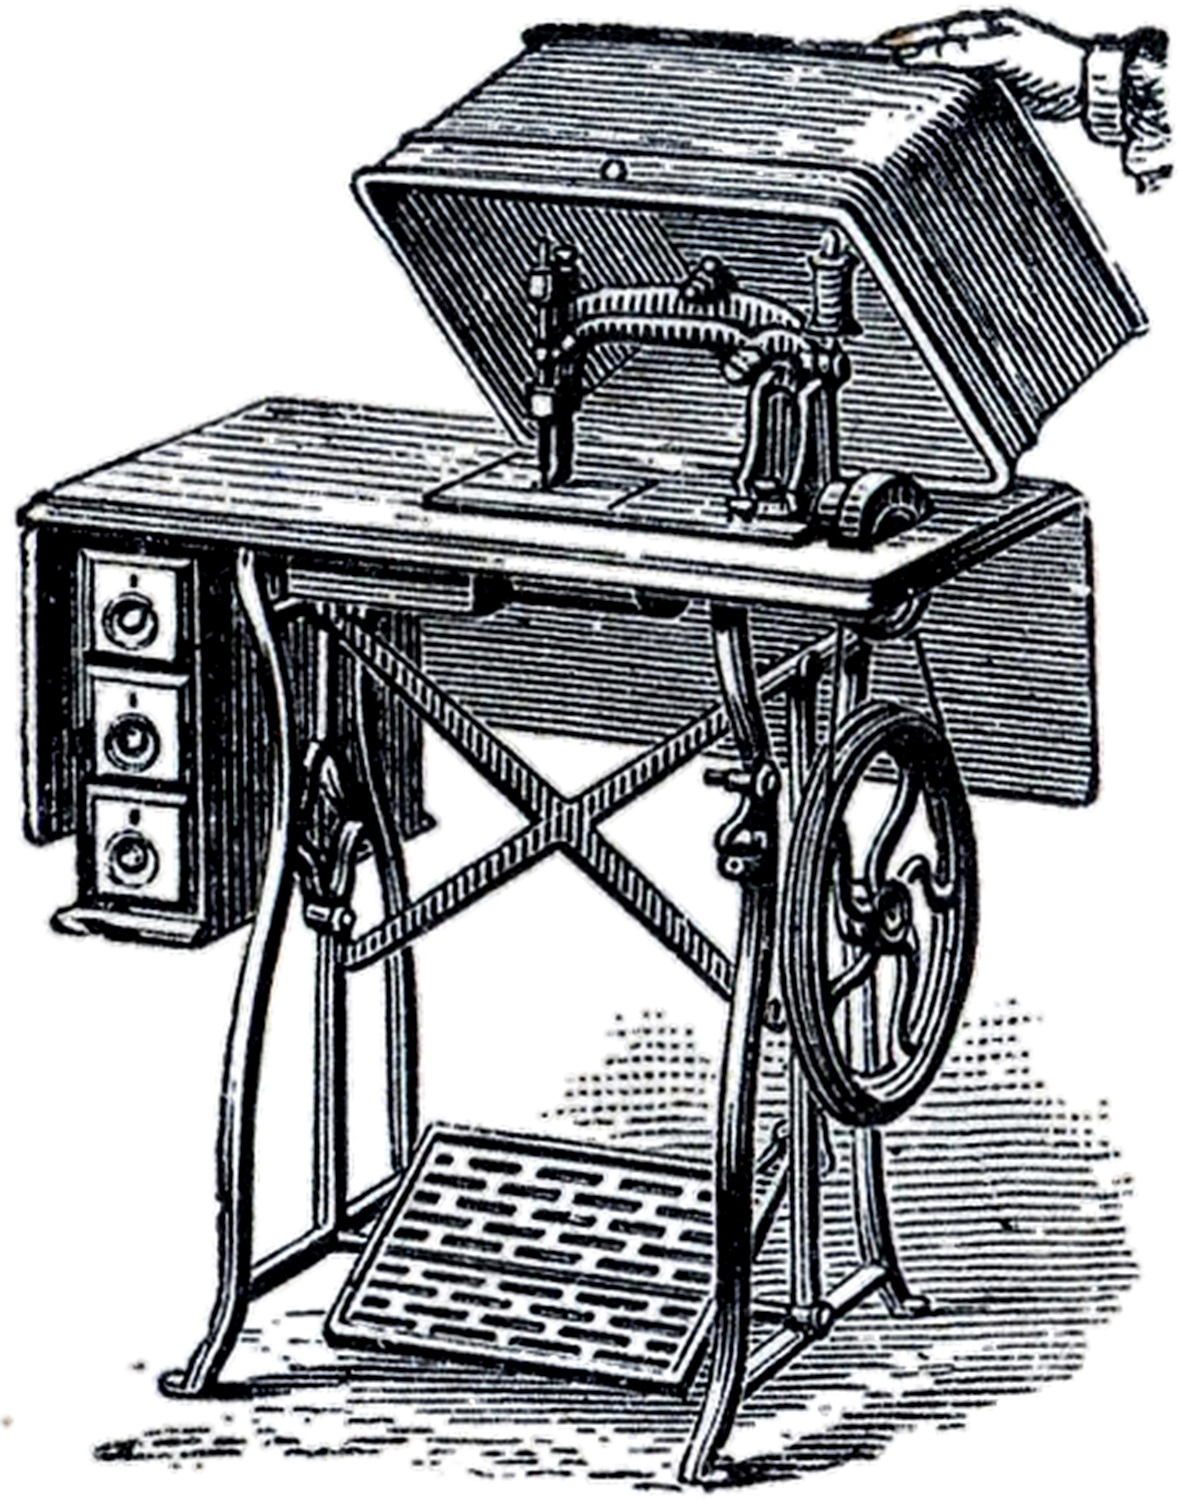 Book Cover Sewing Machines : Old fashioned sewing machine image the graphics fairy